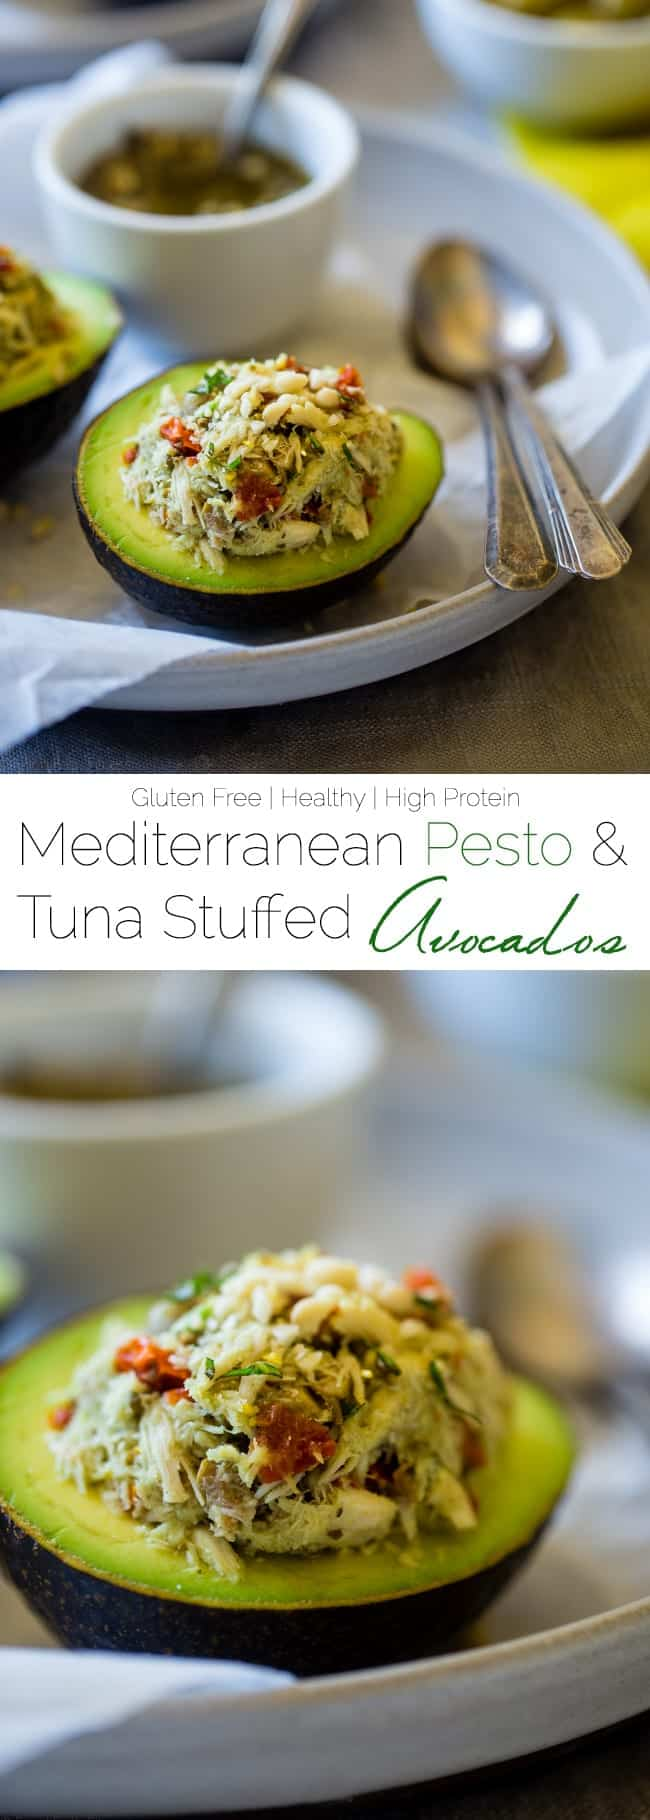 Mediterranean Healthy Tuna Salad Stuffed Avocados - This tuna salad has a Mediterranean twist and is served in an avocado! It has no mayo and is an easy, gluten free and low carb meal with only 6 ingredients! | Foodfaithfitness.com | @FoodFaithFit